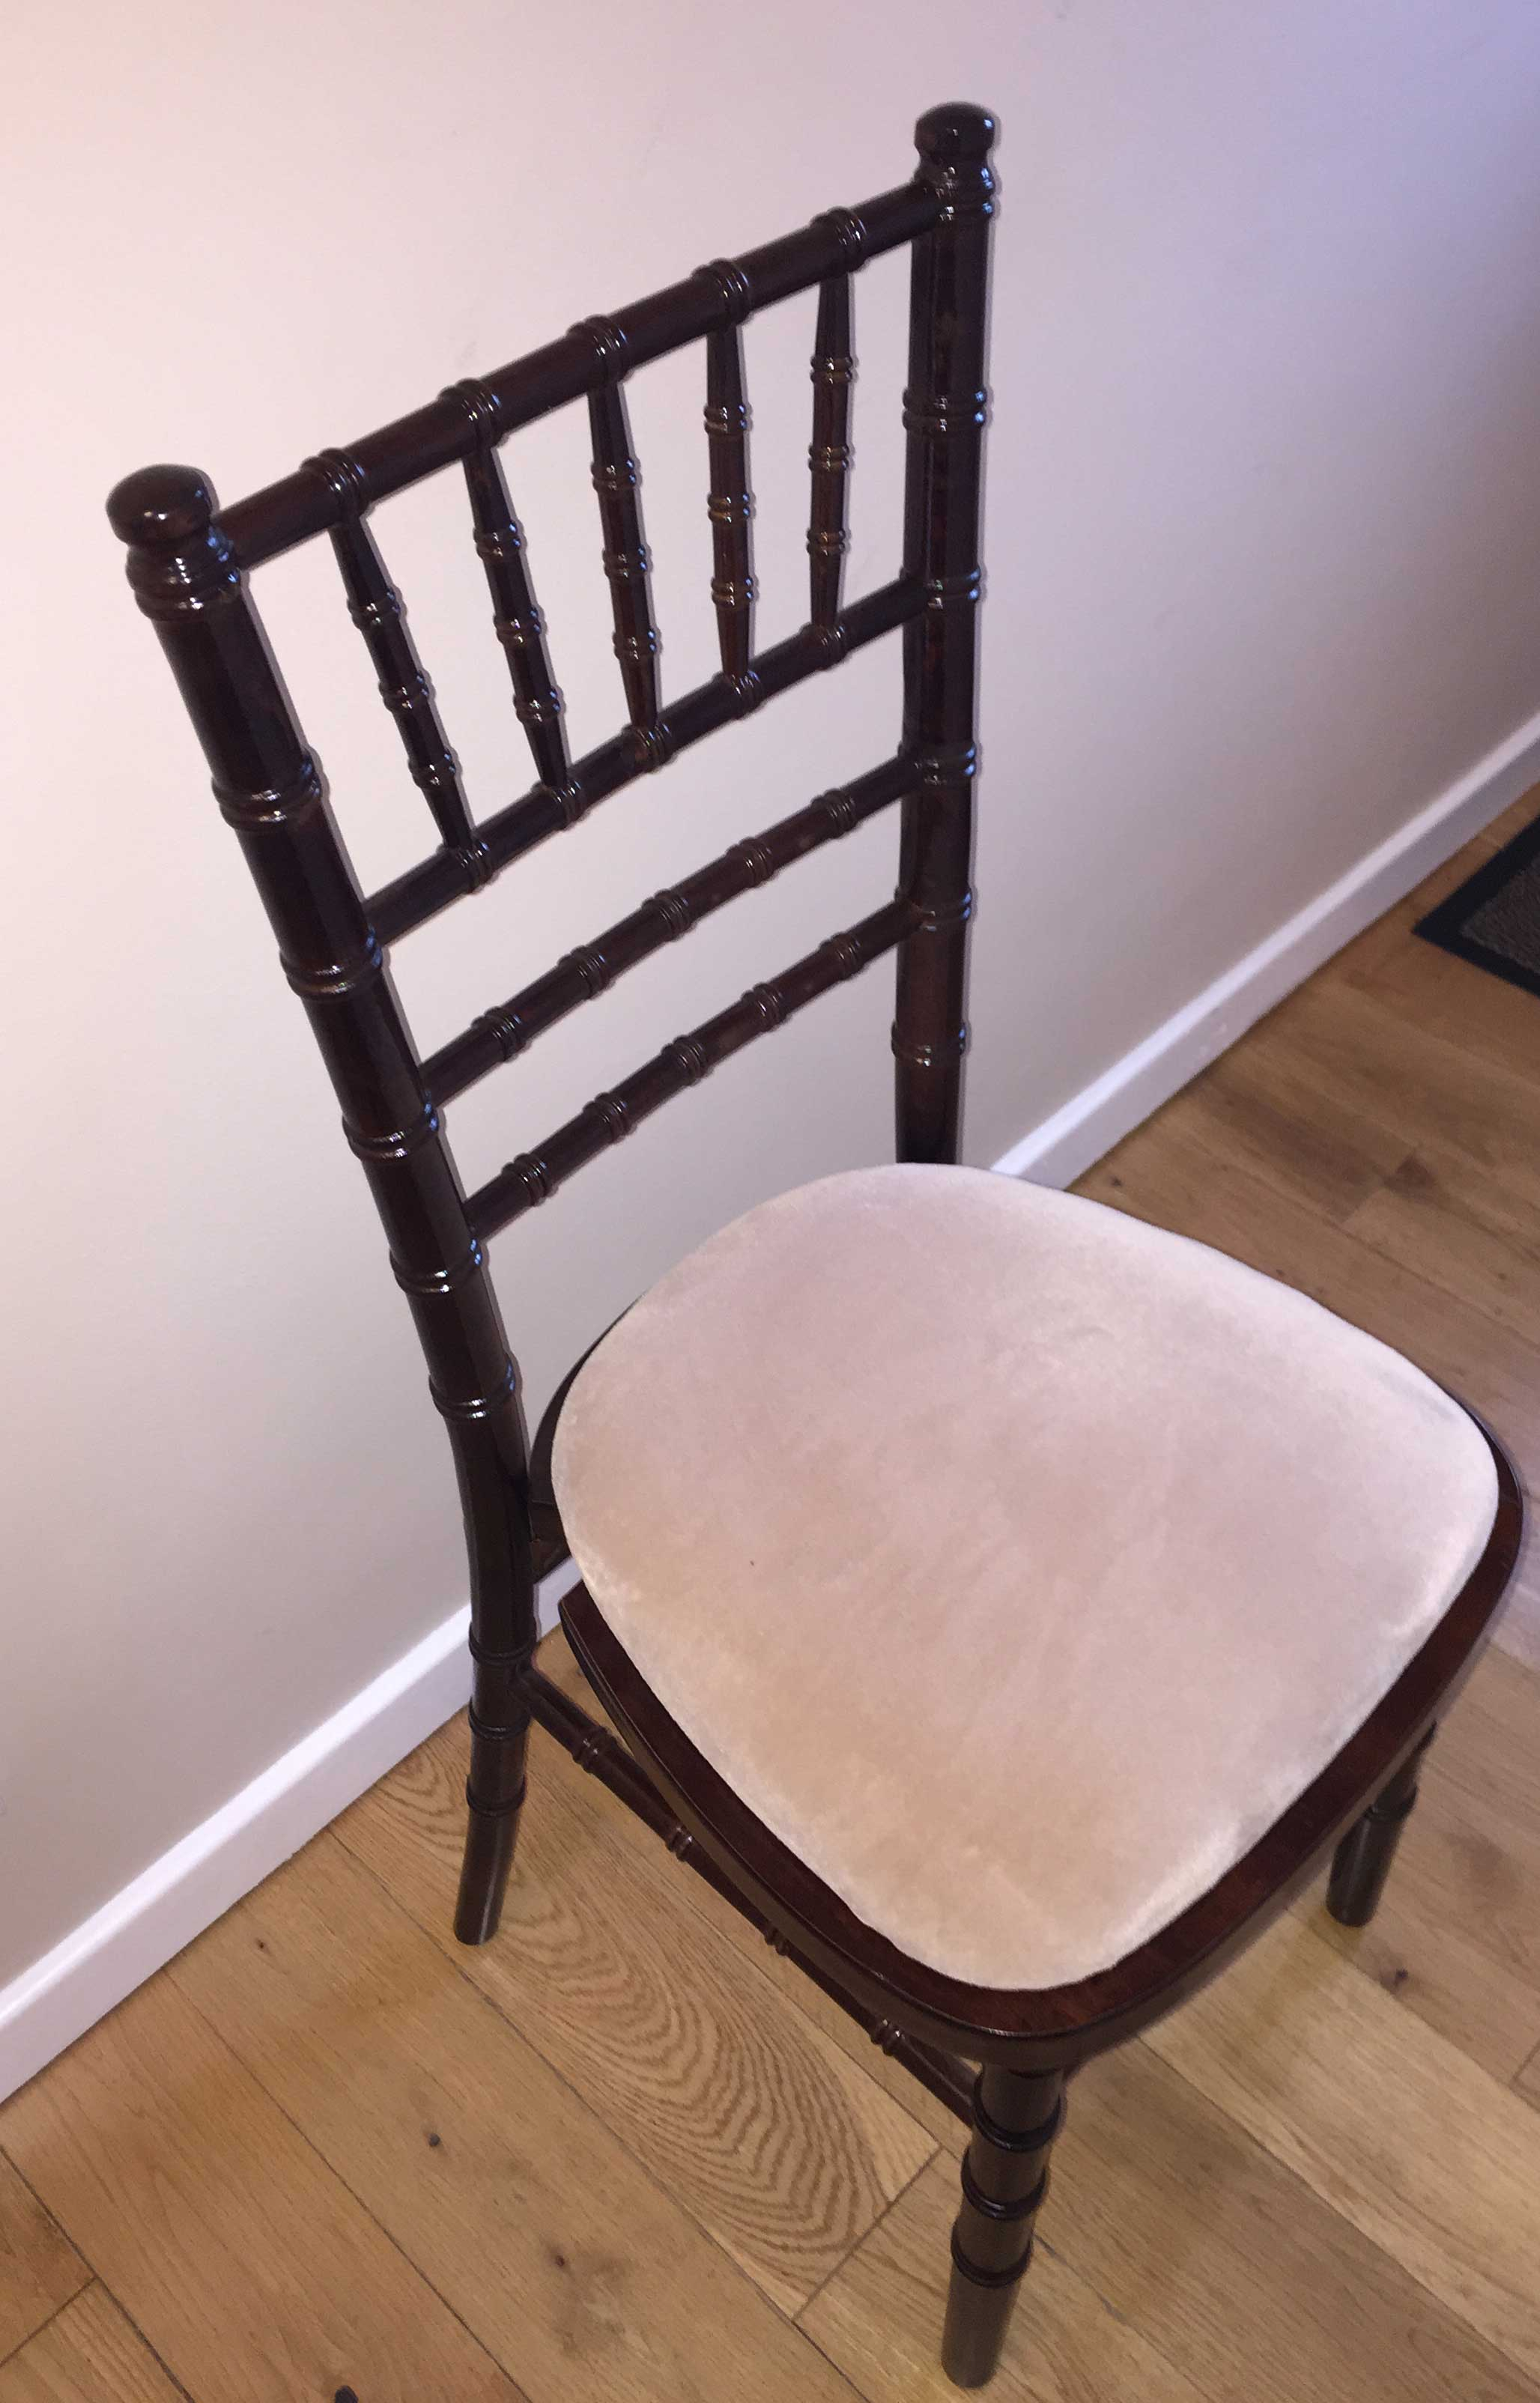 Chairman hire weathered oak white and beech cross back chairs - Chairman Hire Weathered Oak White And Beech Cross Back Chairs